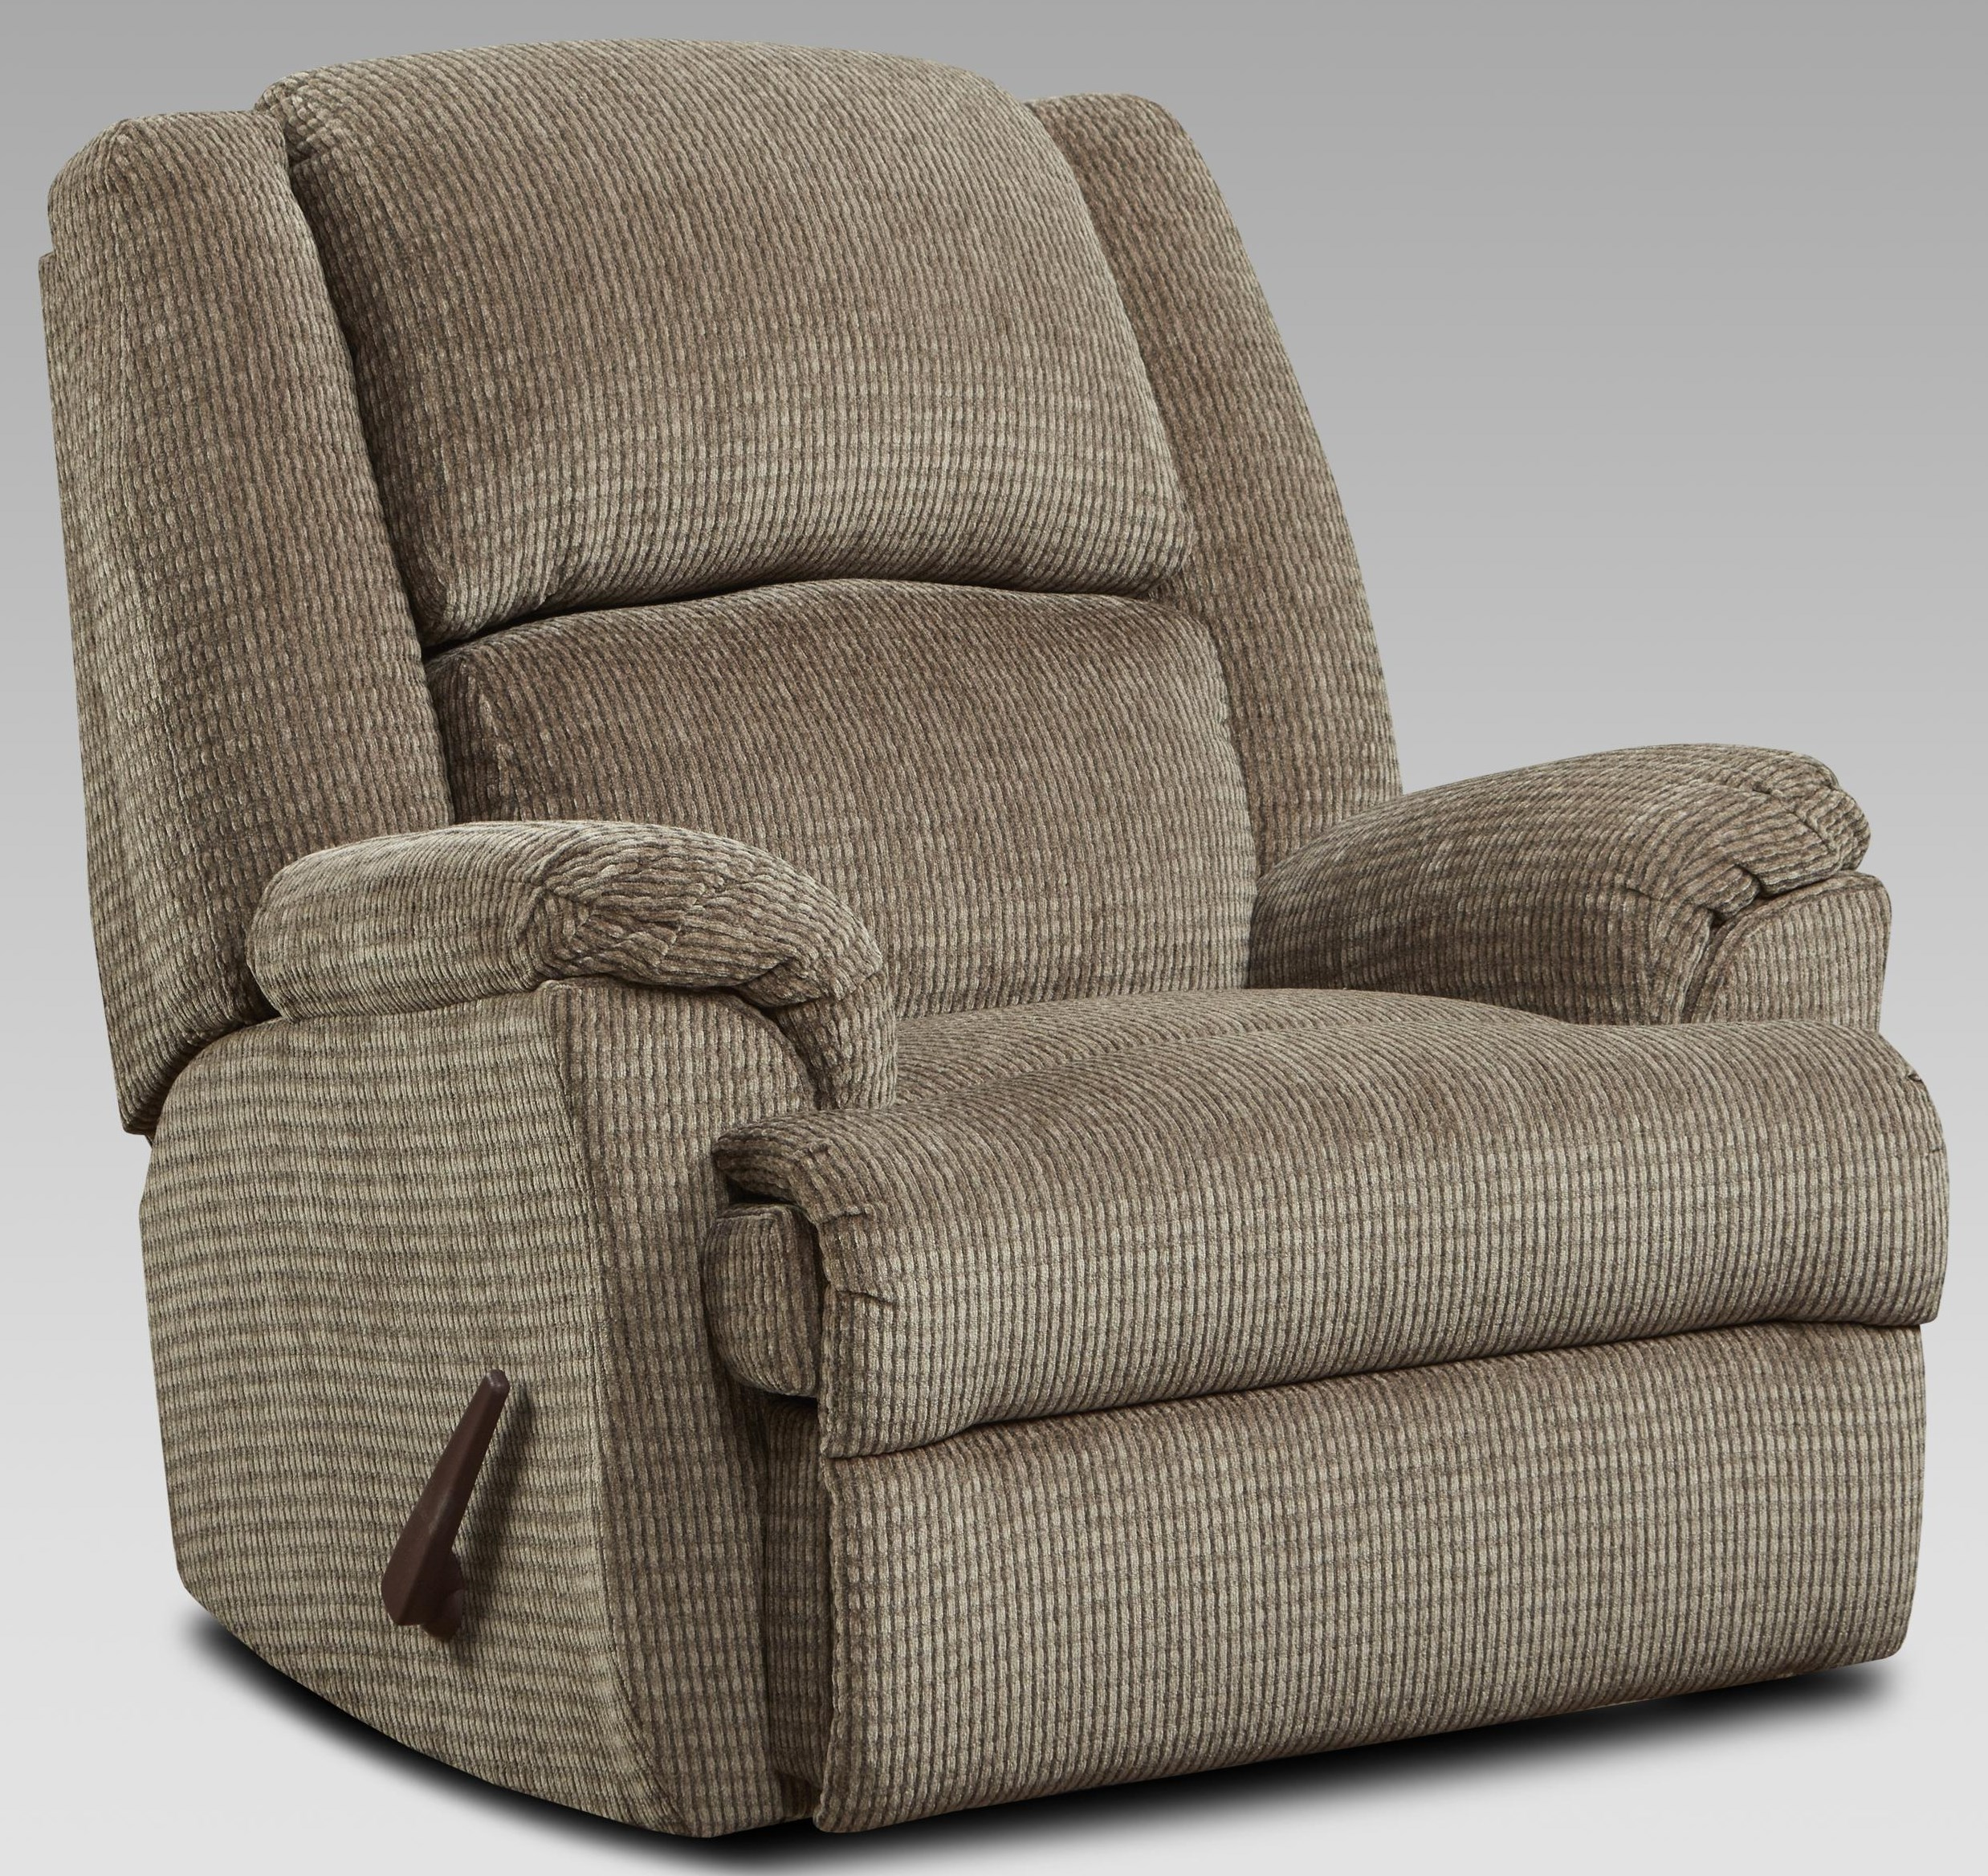 2600 2600 MOCHA RECLINER by Affordable Furniture at Furniture Fair - North Carolina